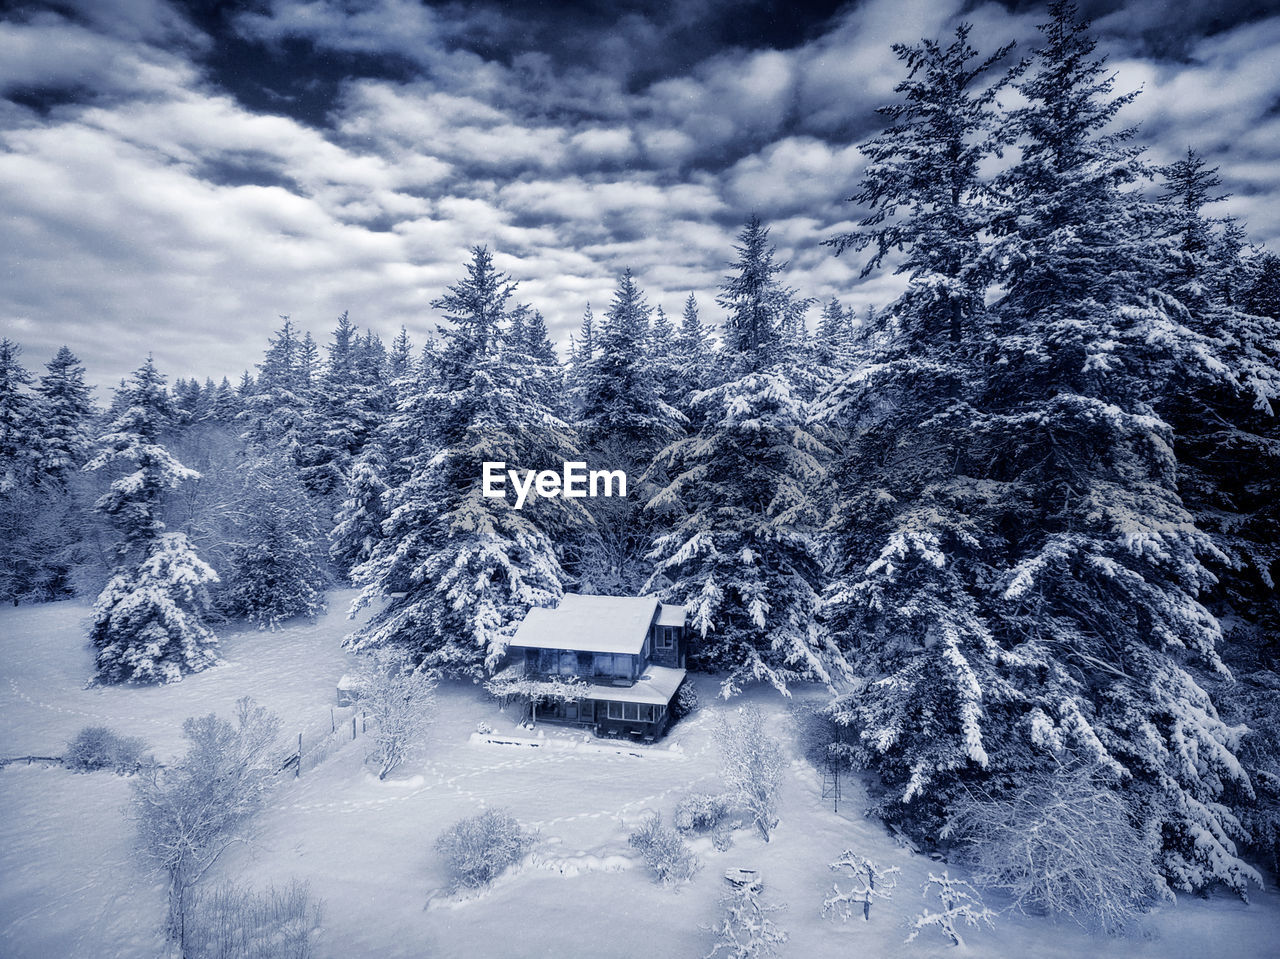 snow, winter, cold temperature, tree, plant, scenics - nature, nature, mountain, sky, day, beauty in nature, cloud - sky, no people, architecture, building exterior, built structure, tranquil scene, land, forest, extreme weather, outdoors, snowcapped mountain, coniferous tree